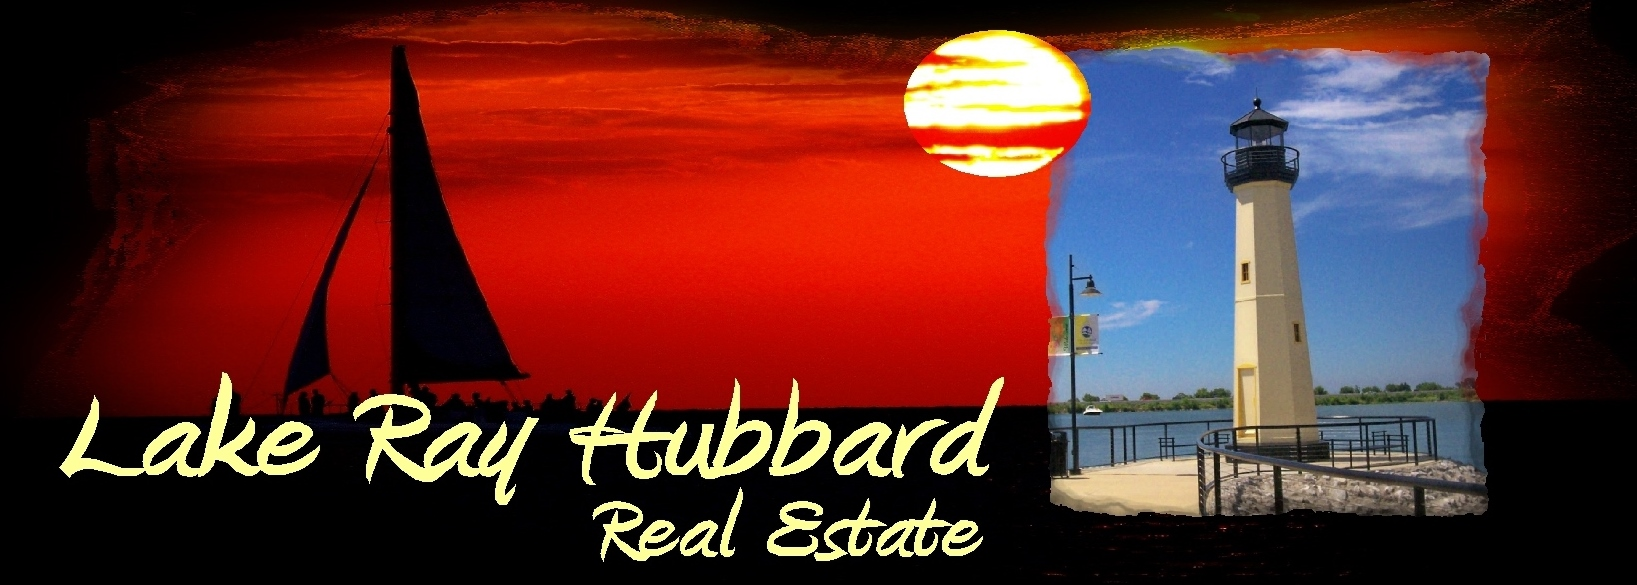 Lake Ray Hubbard Real Estate Lakefront Homes for Sale